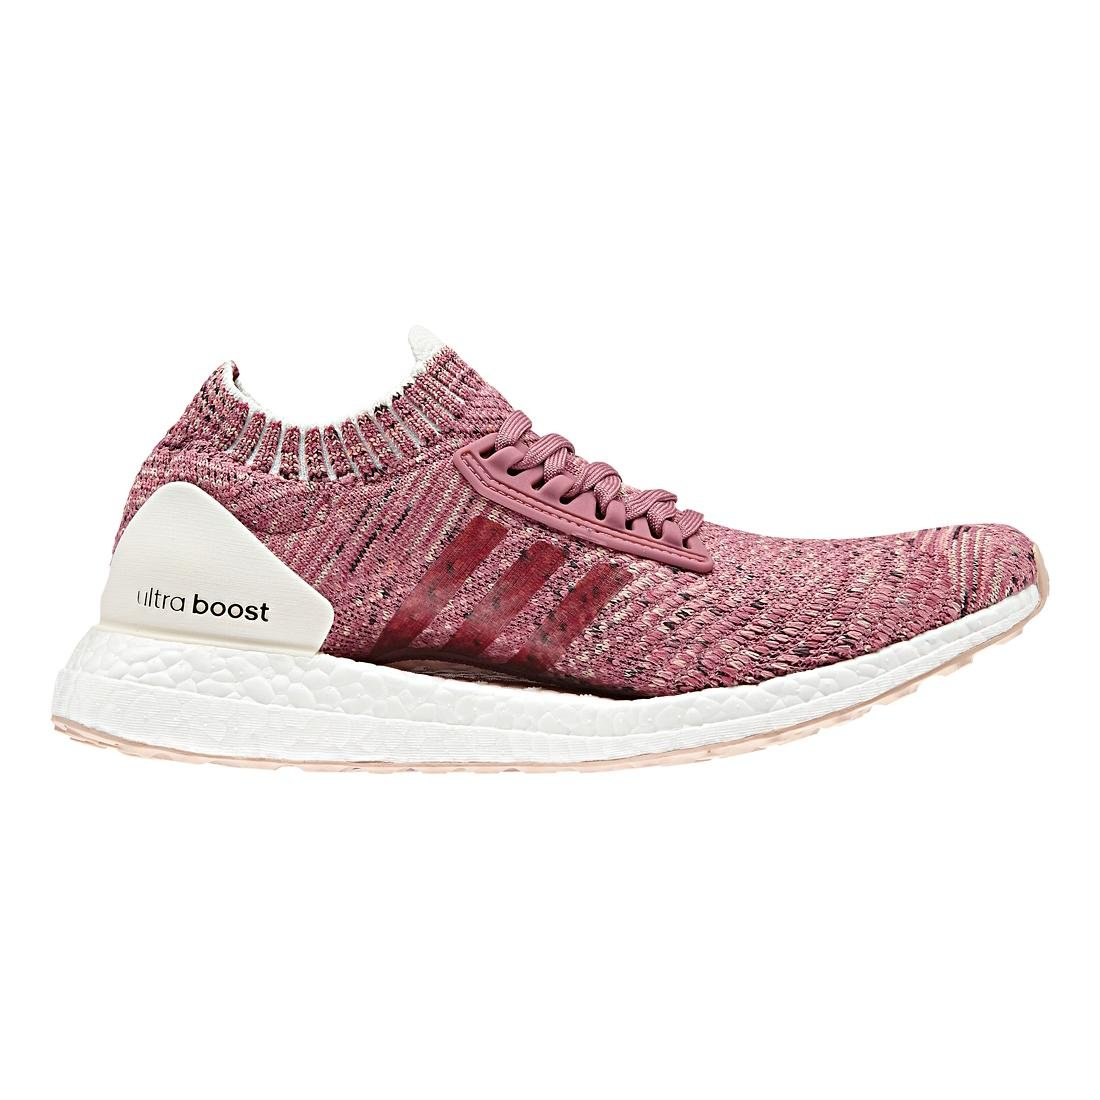 4002a61d08b426 Galleon - Adidas Ultraboost X Shoe Women s Running 9 Trace Maroon-Ash  Pearl-Coral